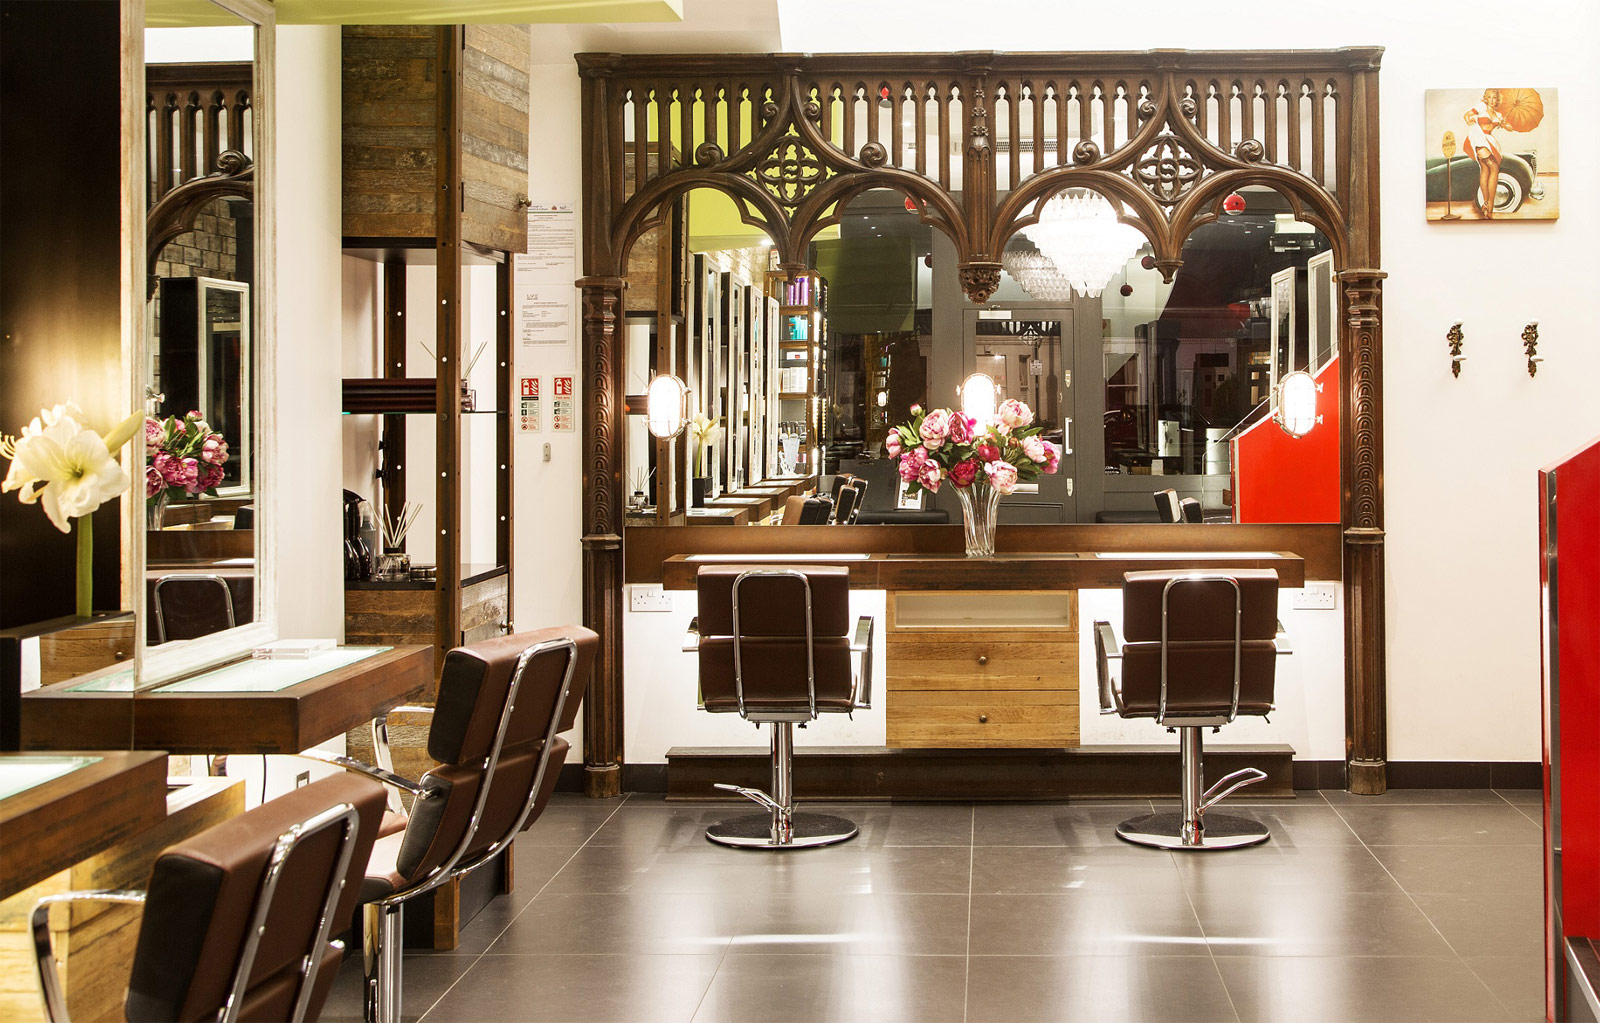 Hair Overhaul At Hari's - One of London's Most Celebrated Salons